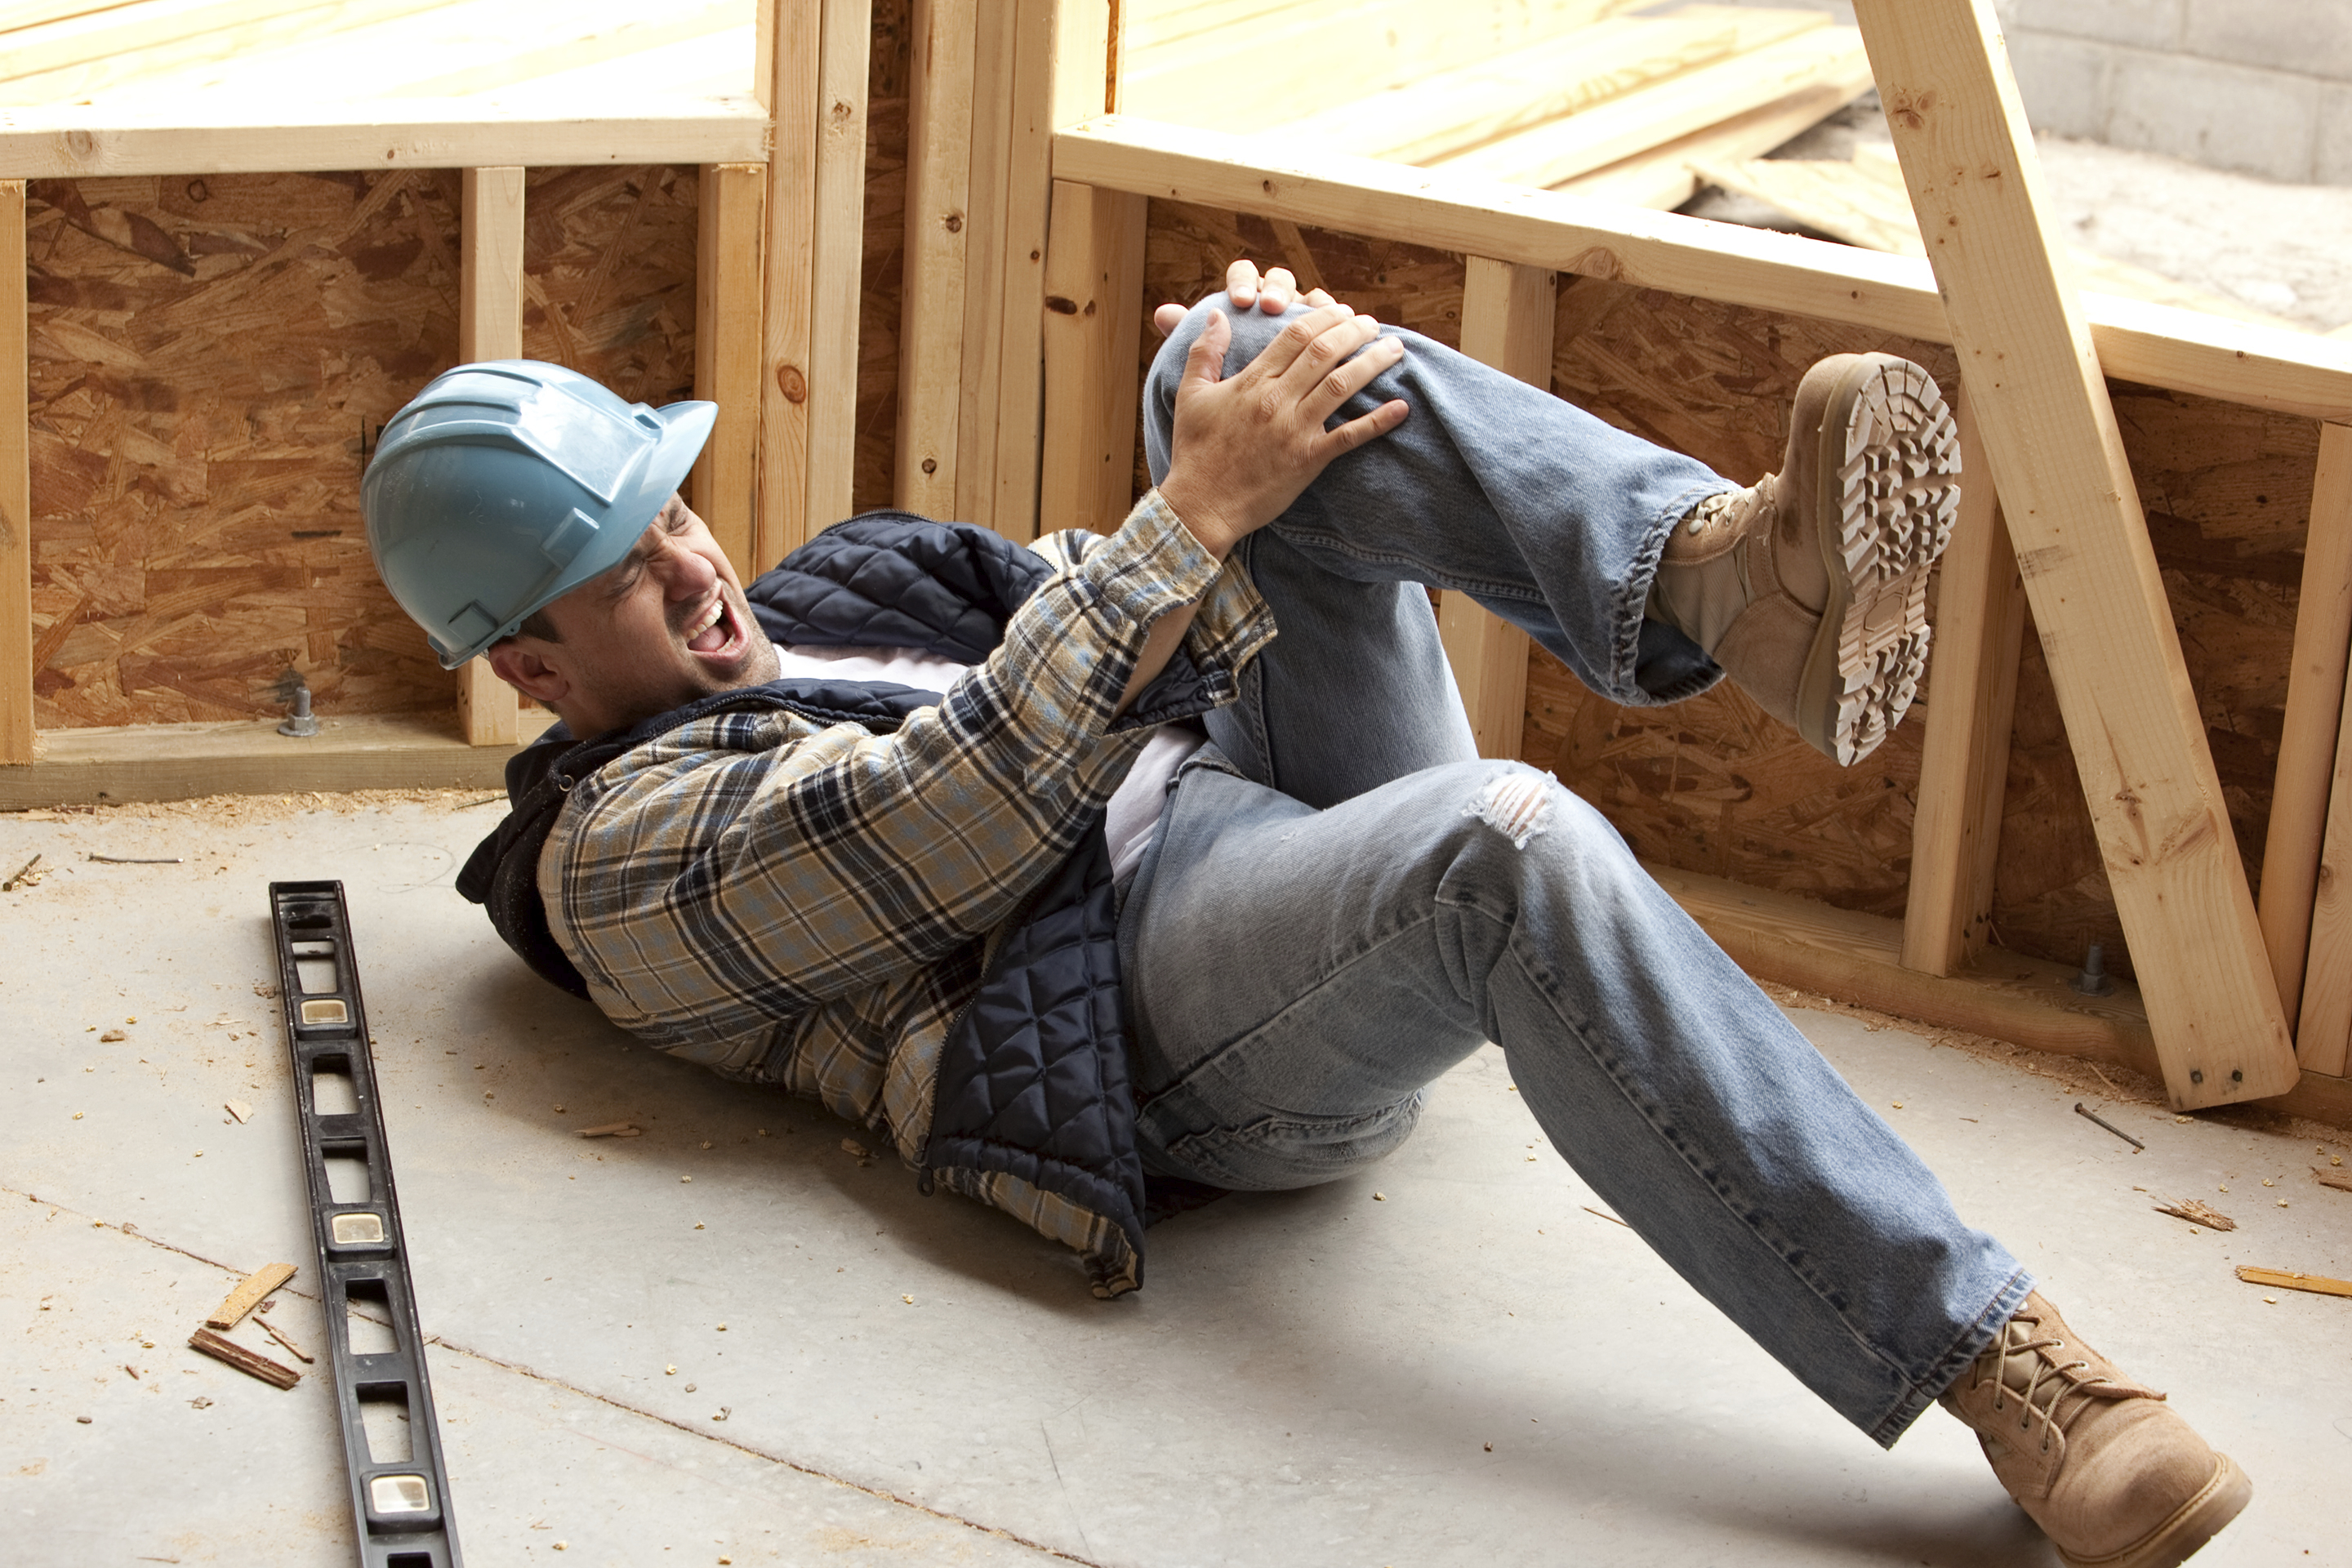 Builder on floor with pain in leg